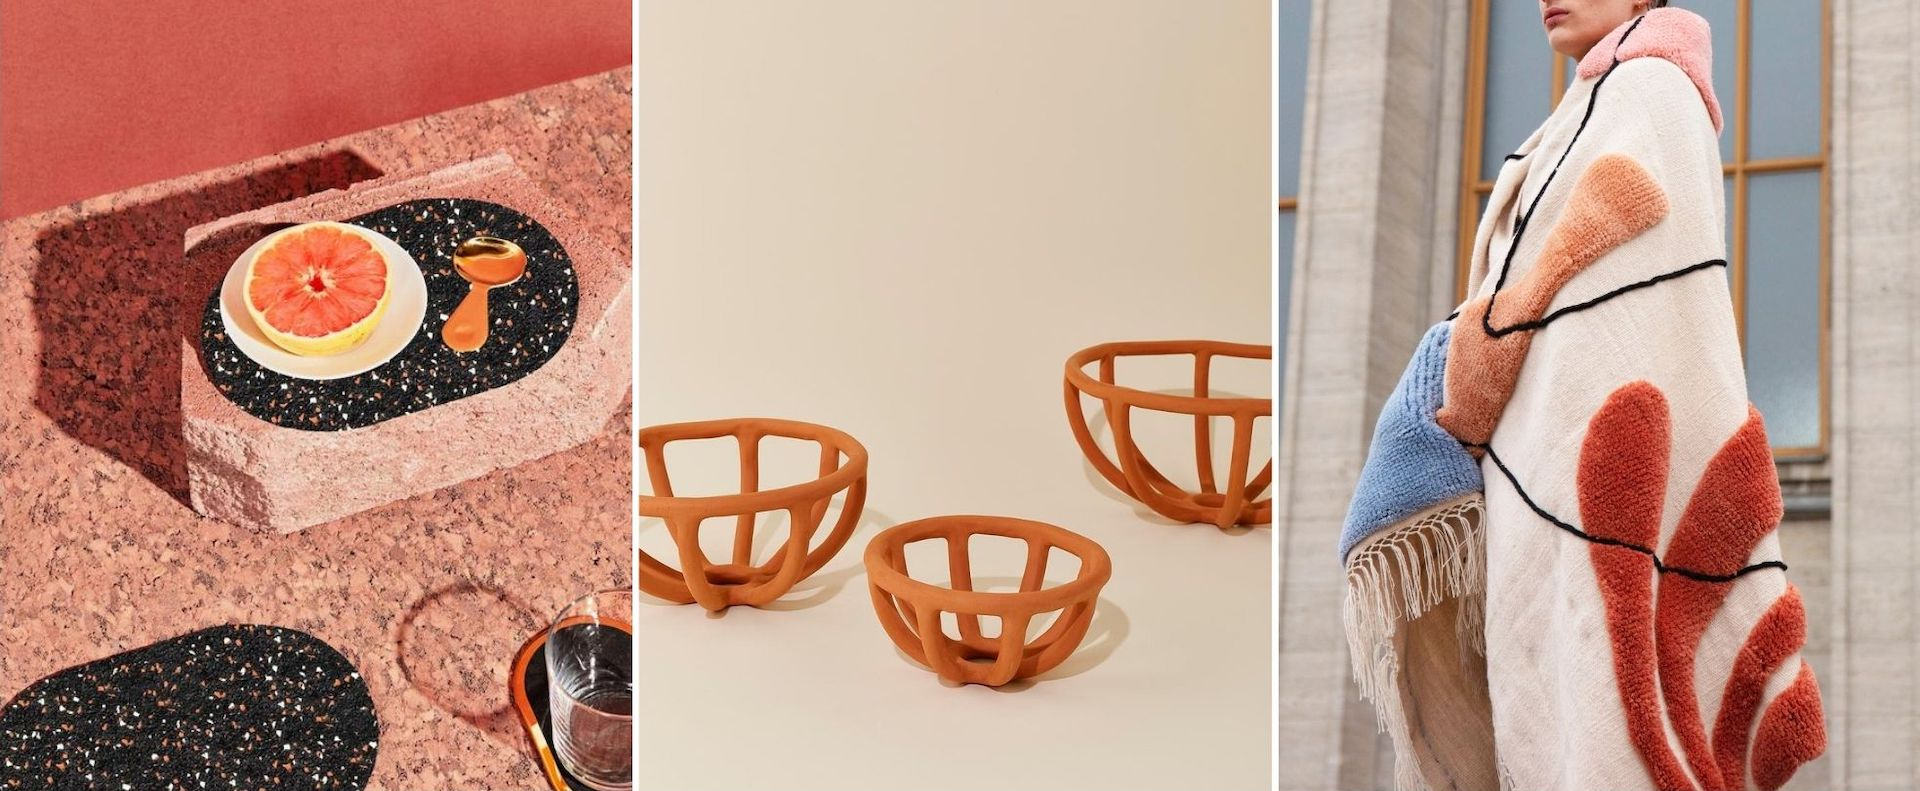 Design items donated to the #DesignforATL fundraiser; from left: Slash Objects' Table Set;  Virginia Sin's Prong Terracotta Bowl, and Studio Proba's New Zealand Wool Blanket. Photos courtesy of #DesignforATL